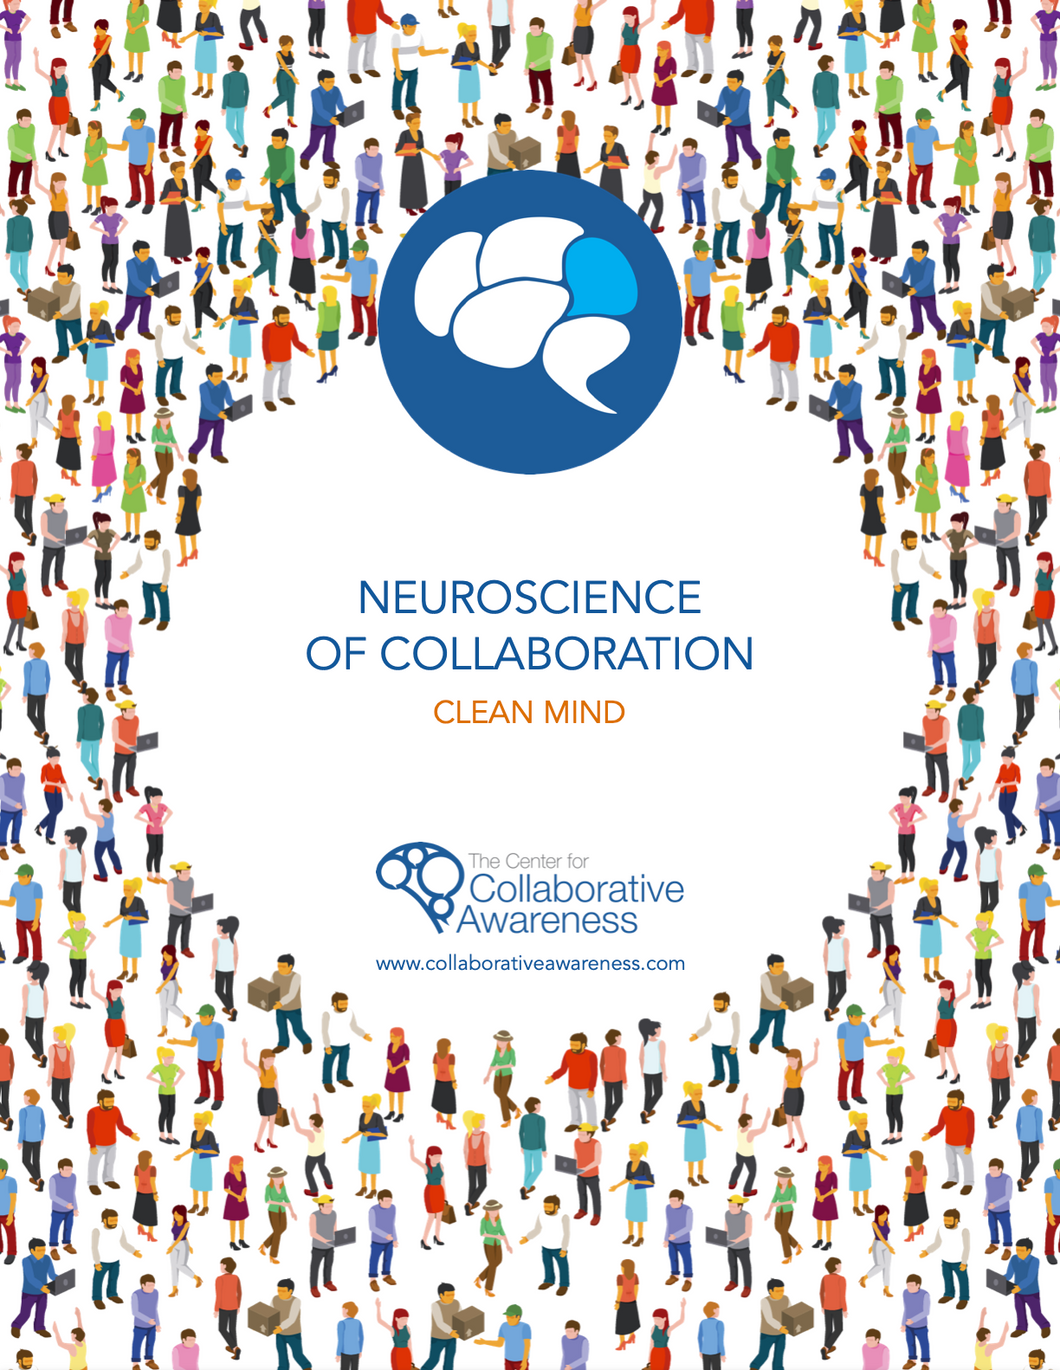 FREE eBOOK: The Neuroscience of Collaboration